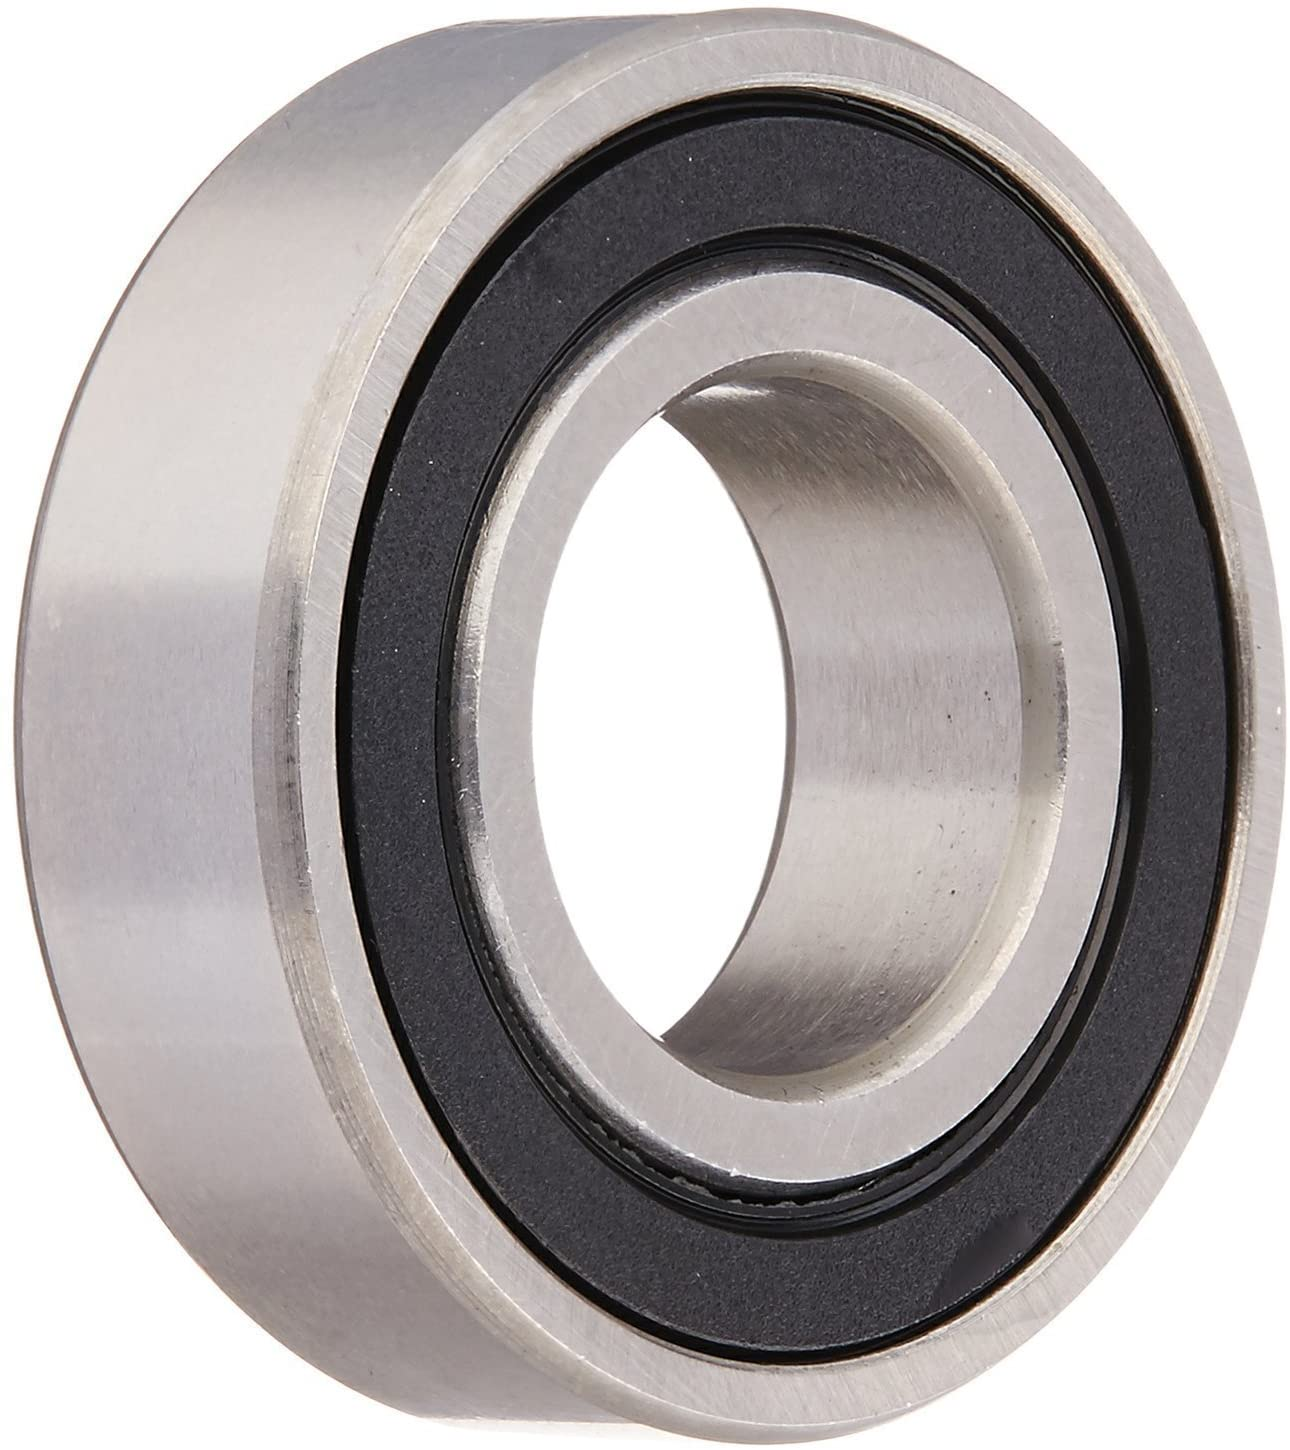 6003-2RS Sealed Bearings 17x35x10 Ball Bearings/Pre-Lubricated-5 Bearings